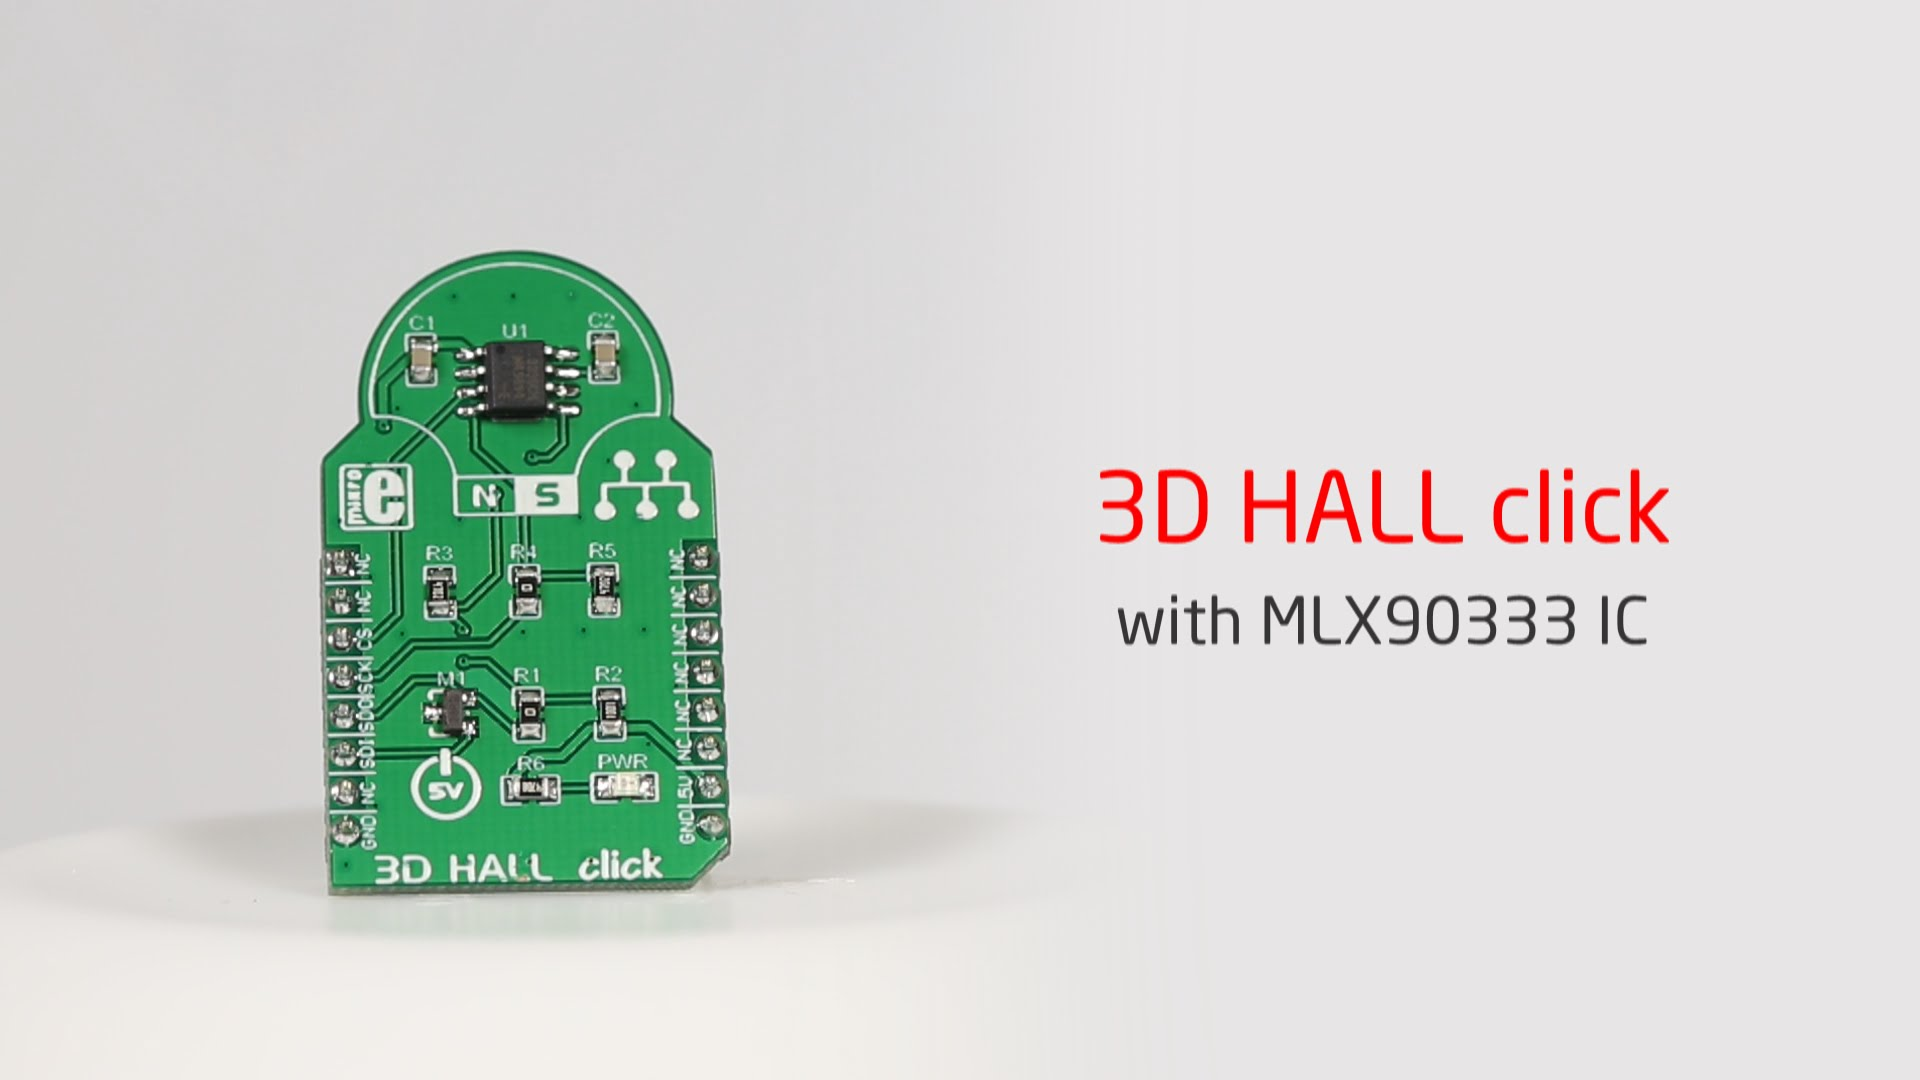 3D Hall click released